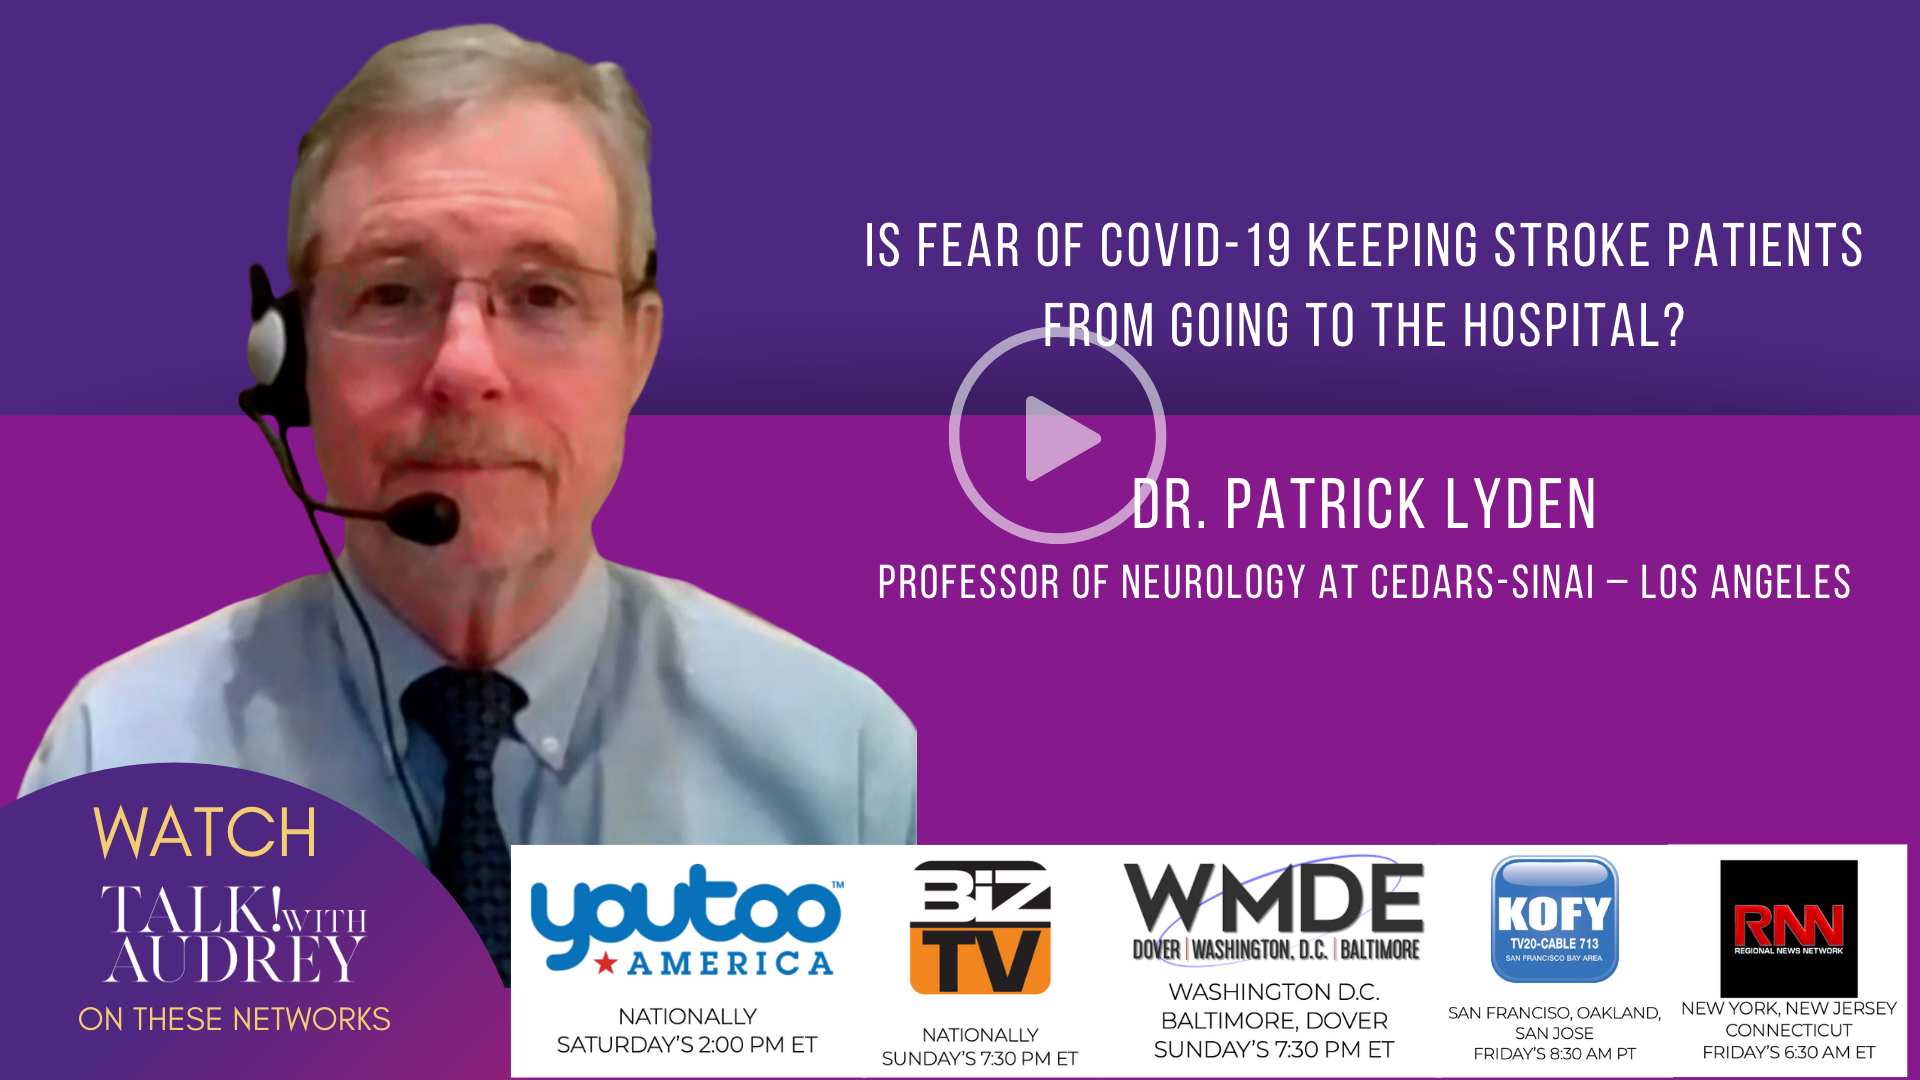 Is Fear of COVID-19 Keeping Stroke Patients from Going to the Hospital? – TALK! with AUDREY TV